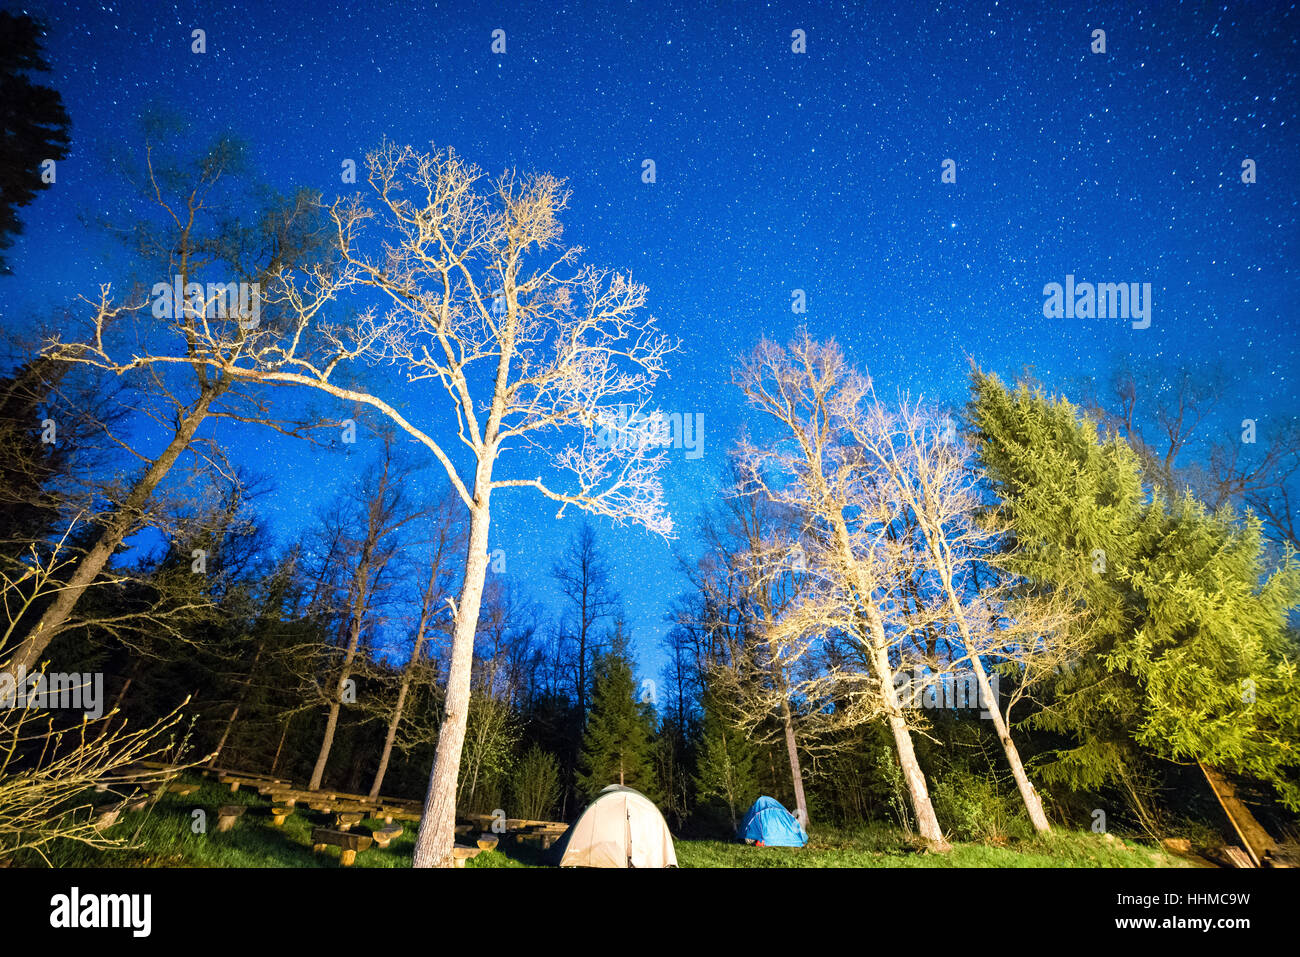 night sky with stars in forest with trees and shadows - Stock Image